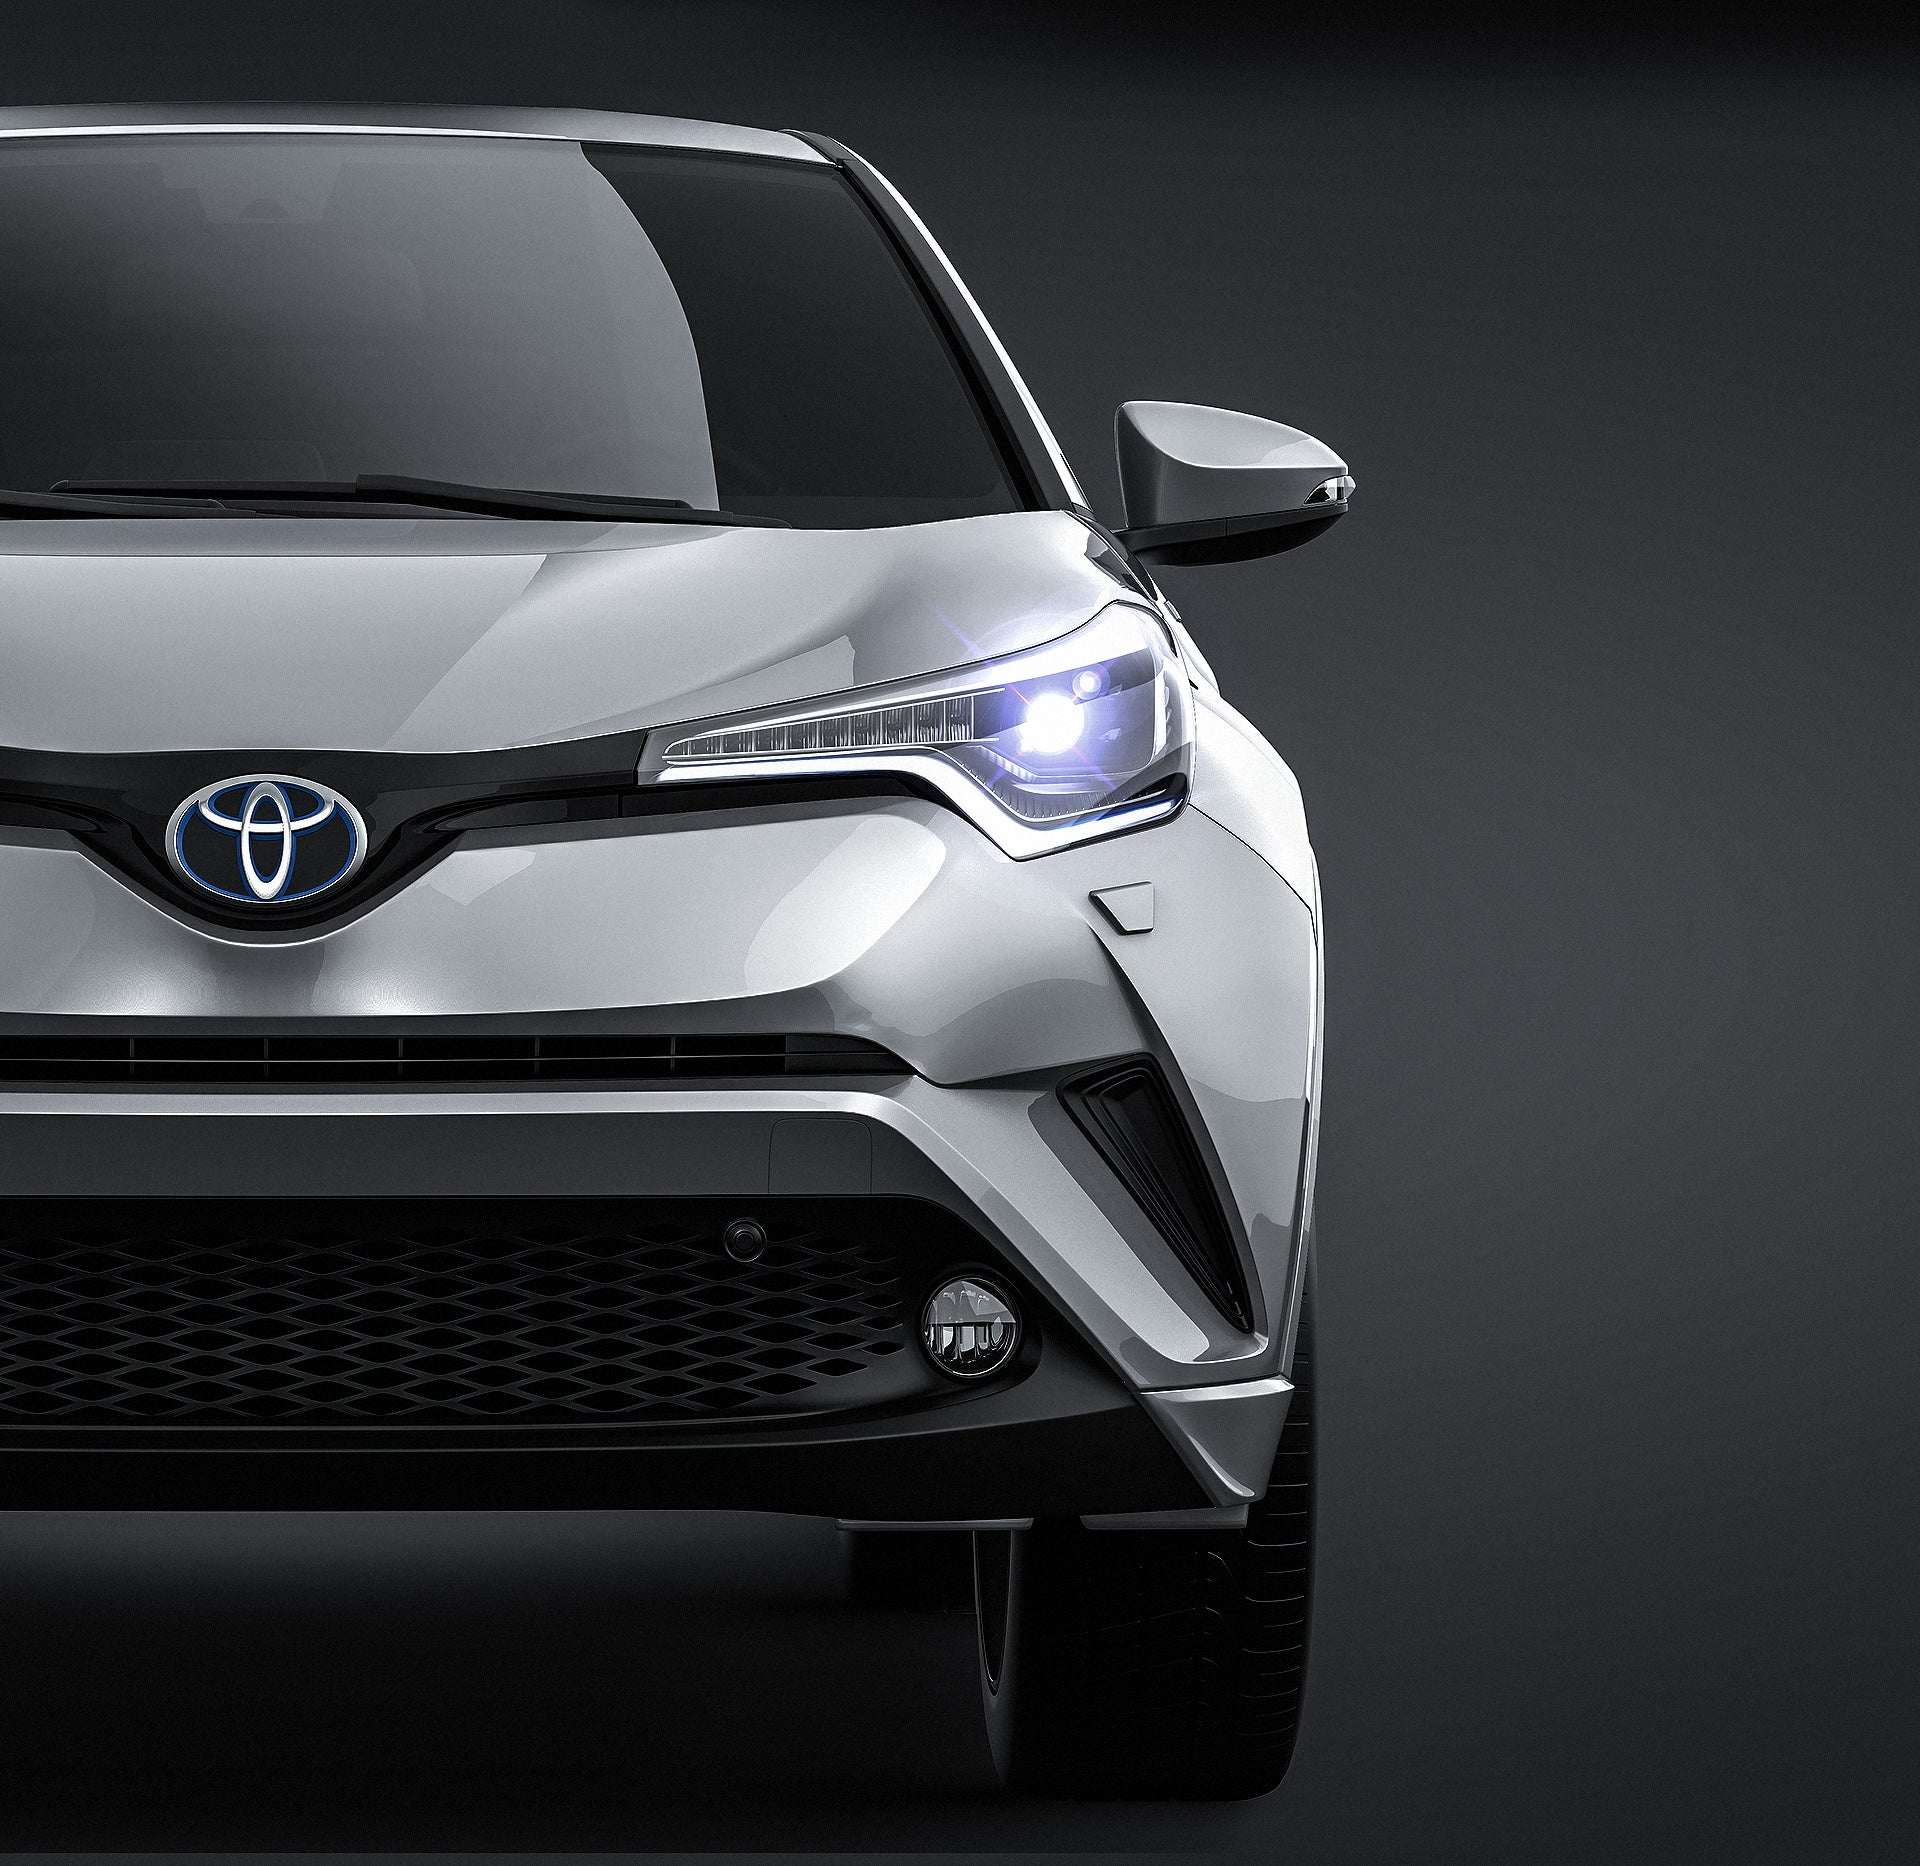 Toyota C-HR 2017 glossy finish - all sides Car Mockup Template.psd